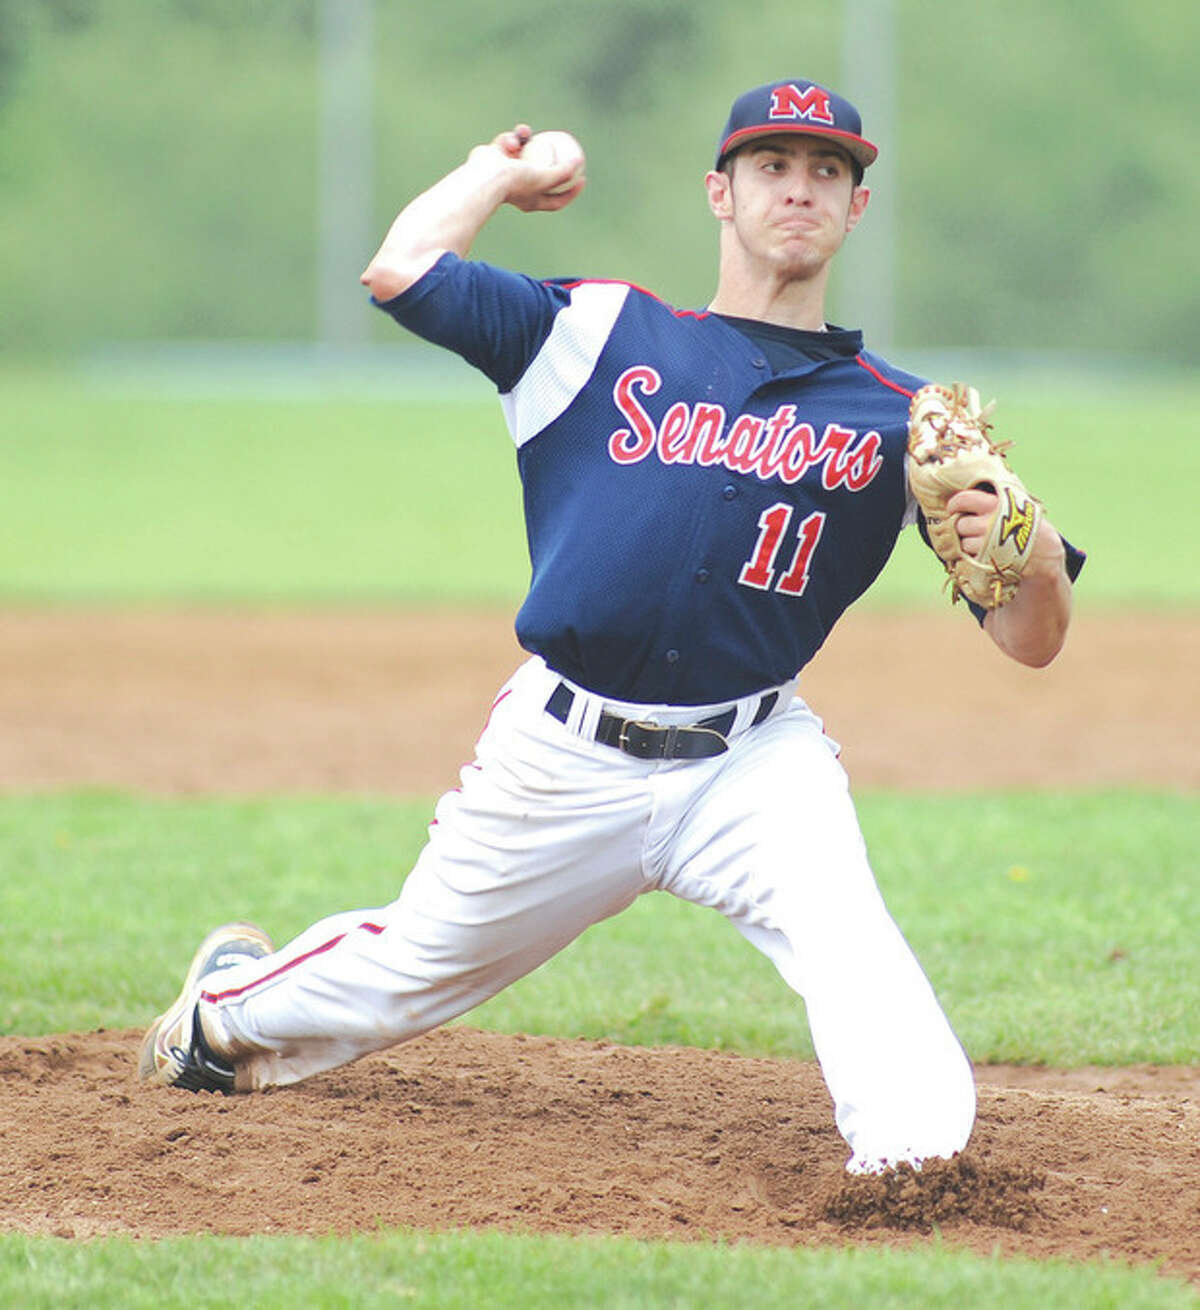 Hour Photo/John Nash Brien McMahon pitcher Bryan Daniello fired a two-hitter, striking out 10 and walking not a soul, as the Senators topped Wilton, 4-1, in FCIAC quarterfinal baseball action.